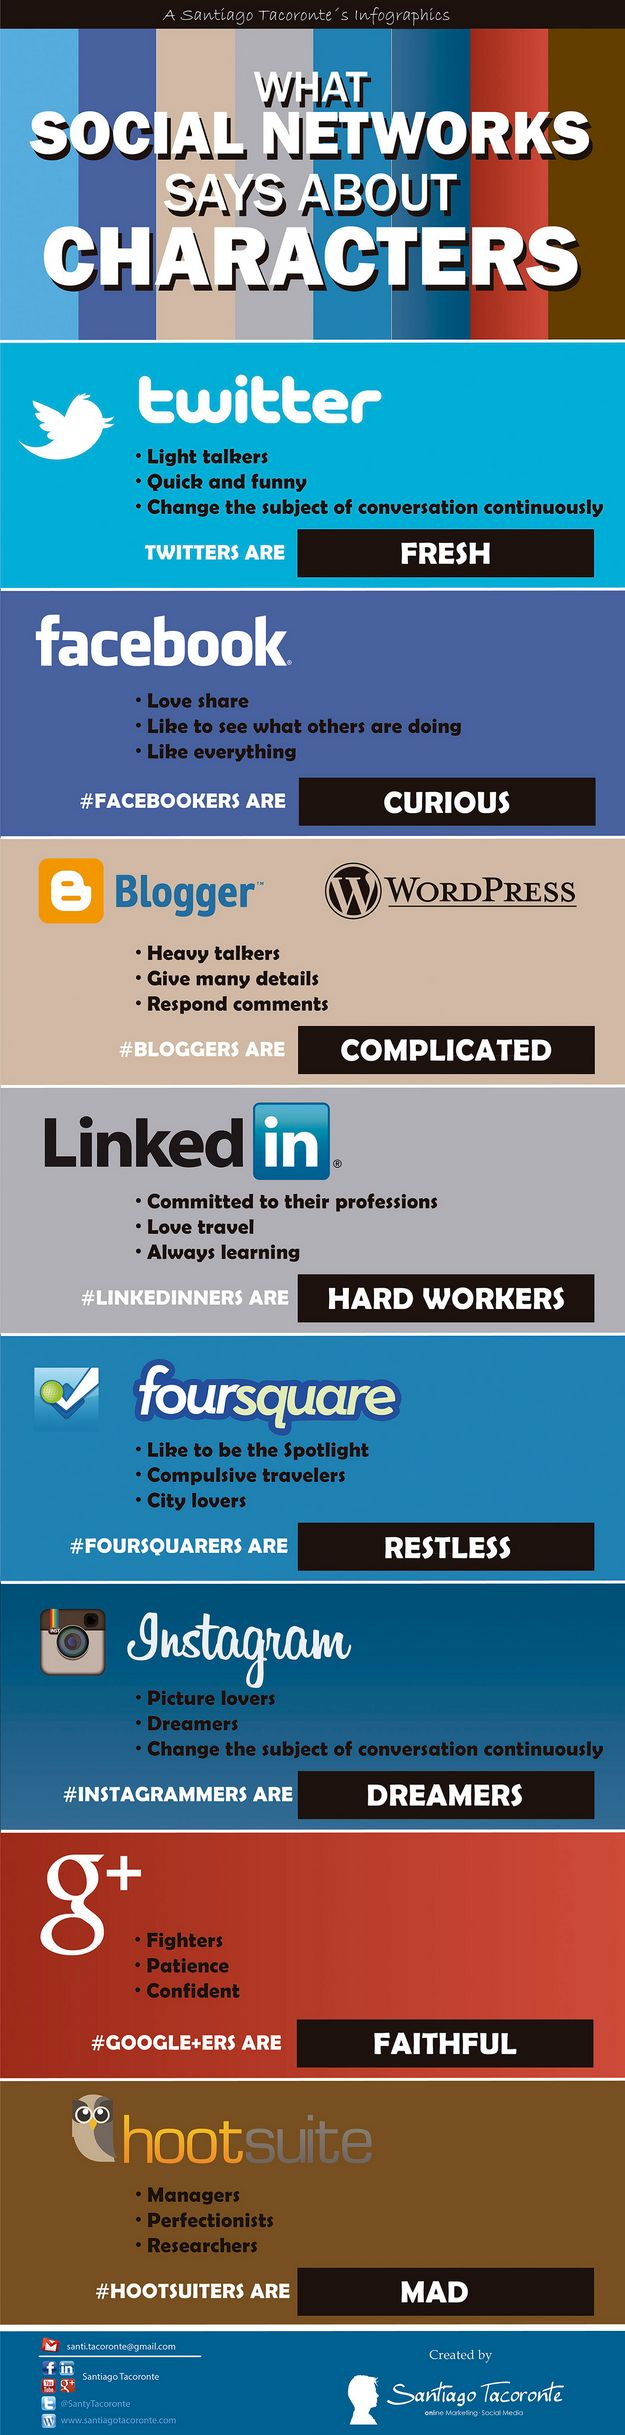 social-networks-characters